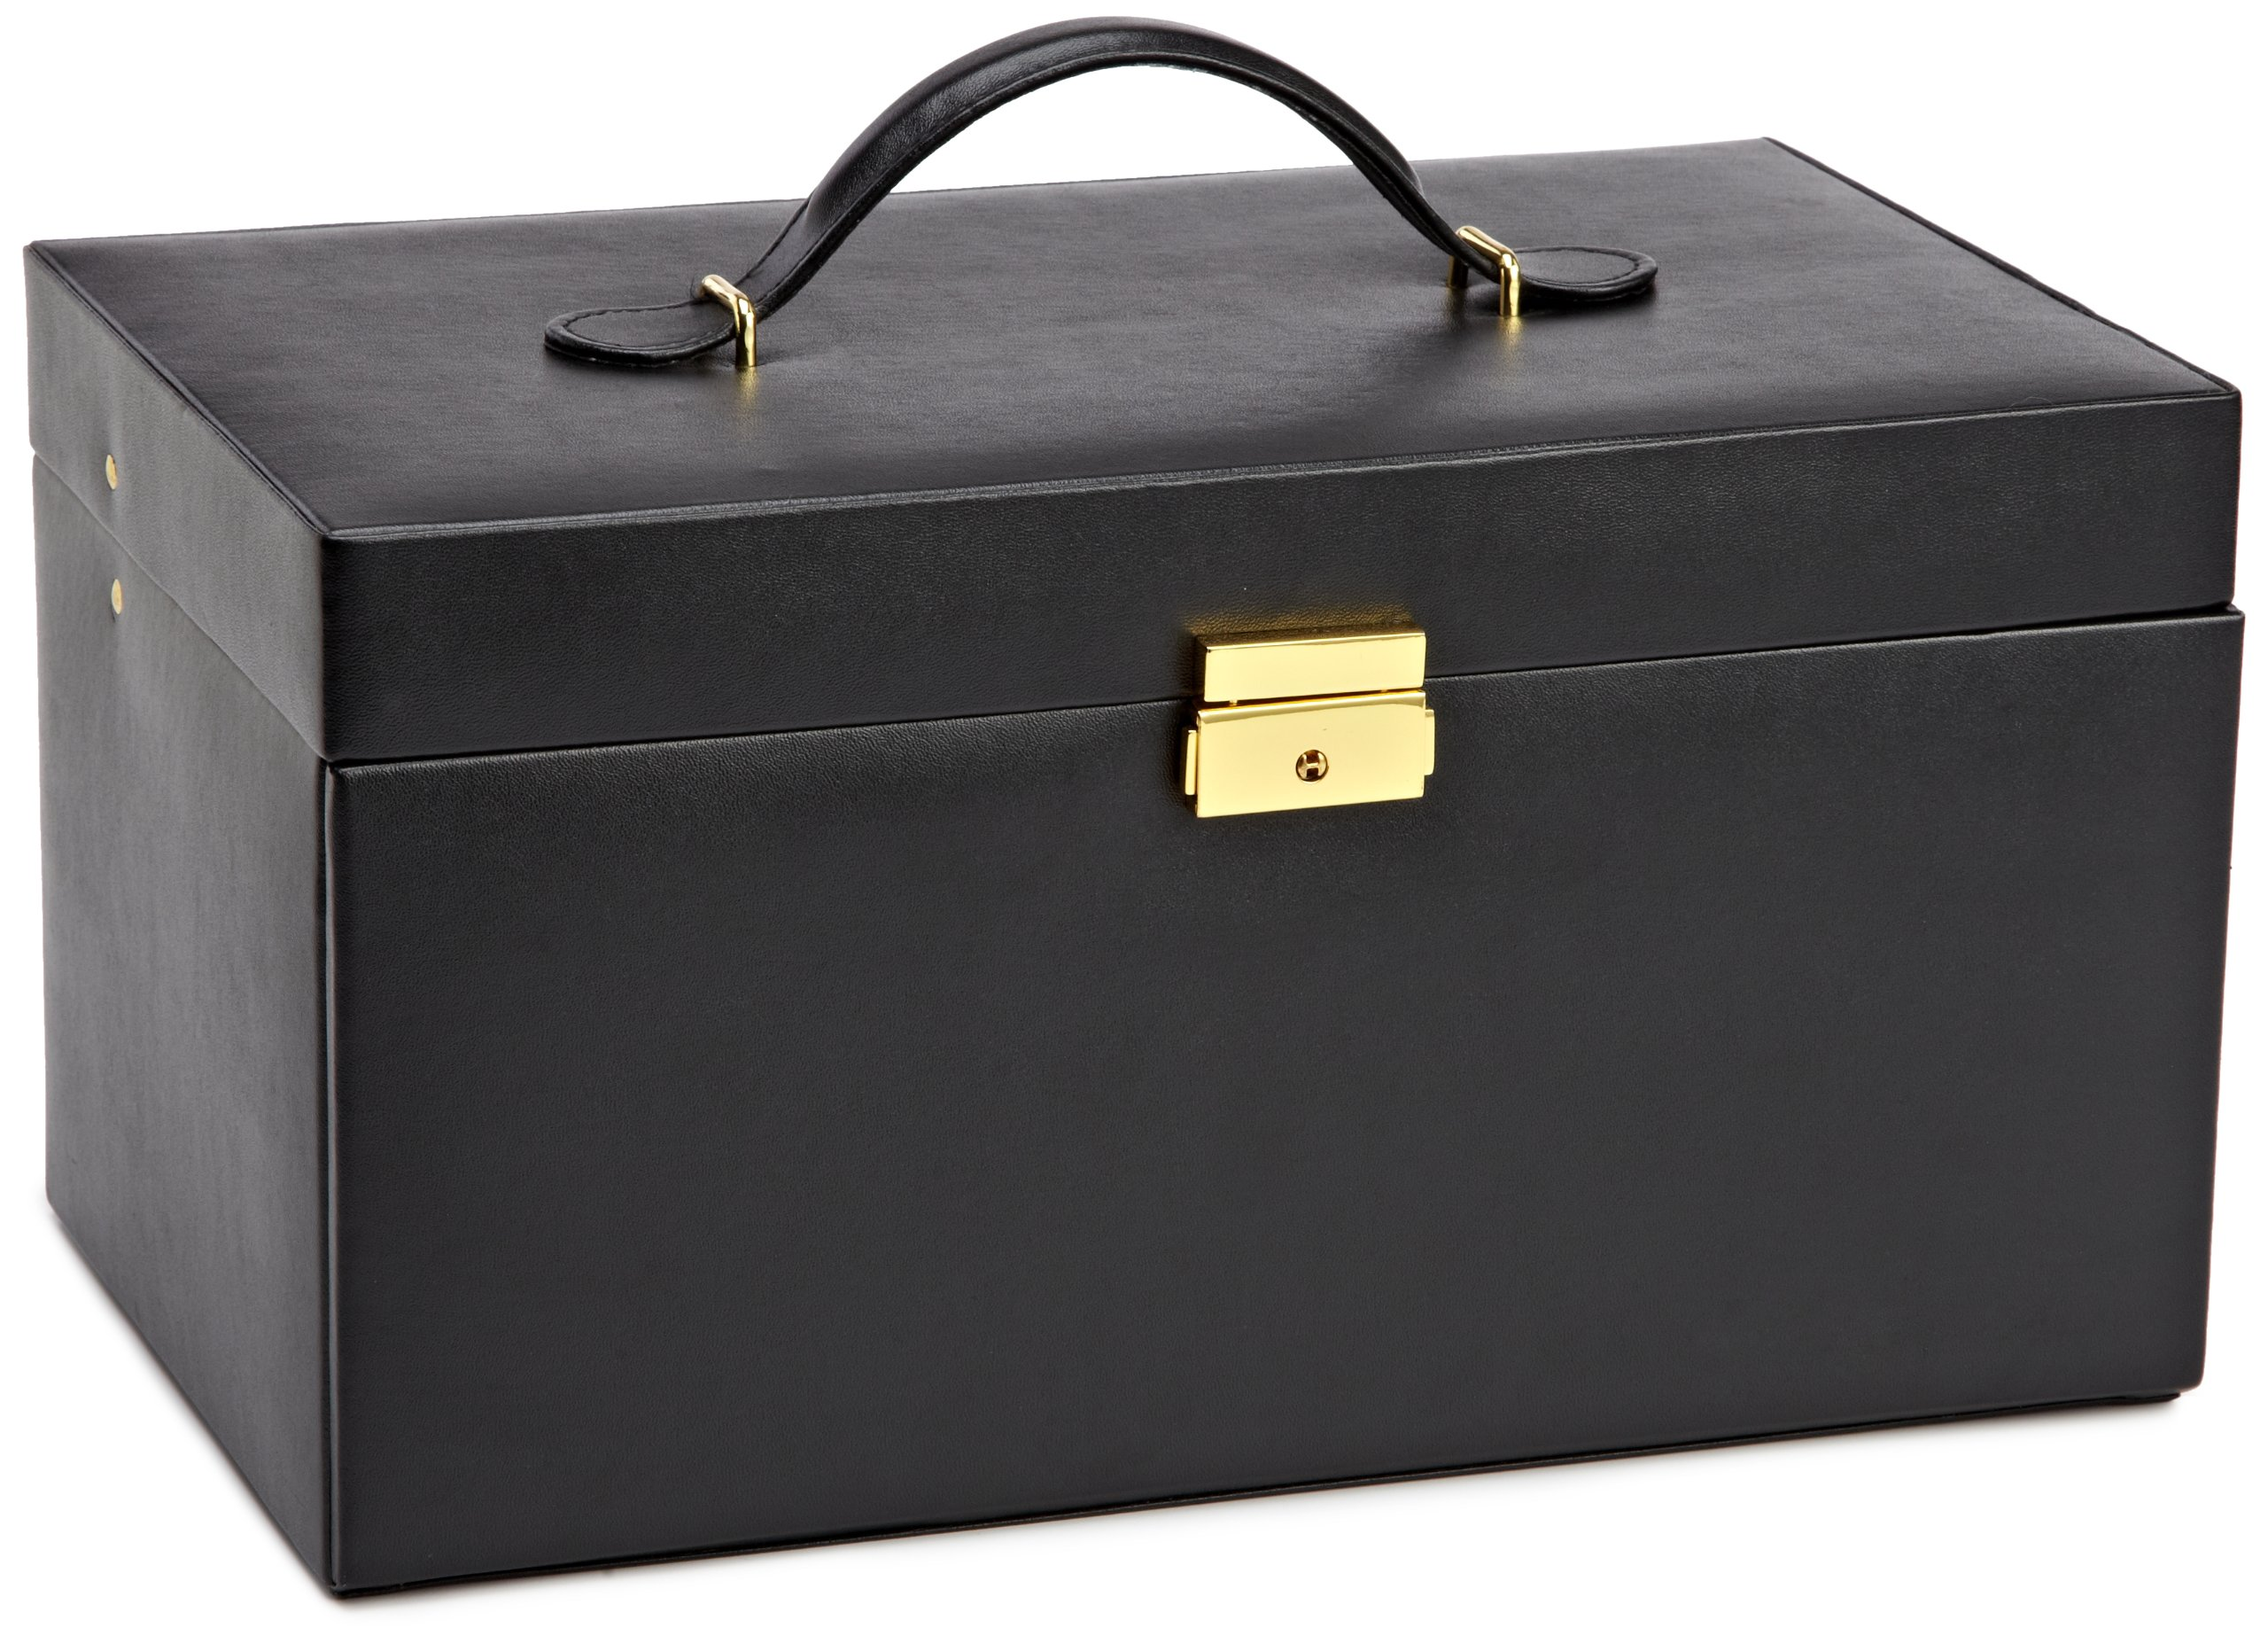 WOLF 280202 Heritage Extra Large Box, Black by WOLF